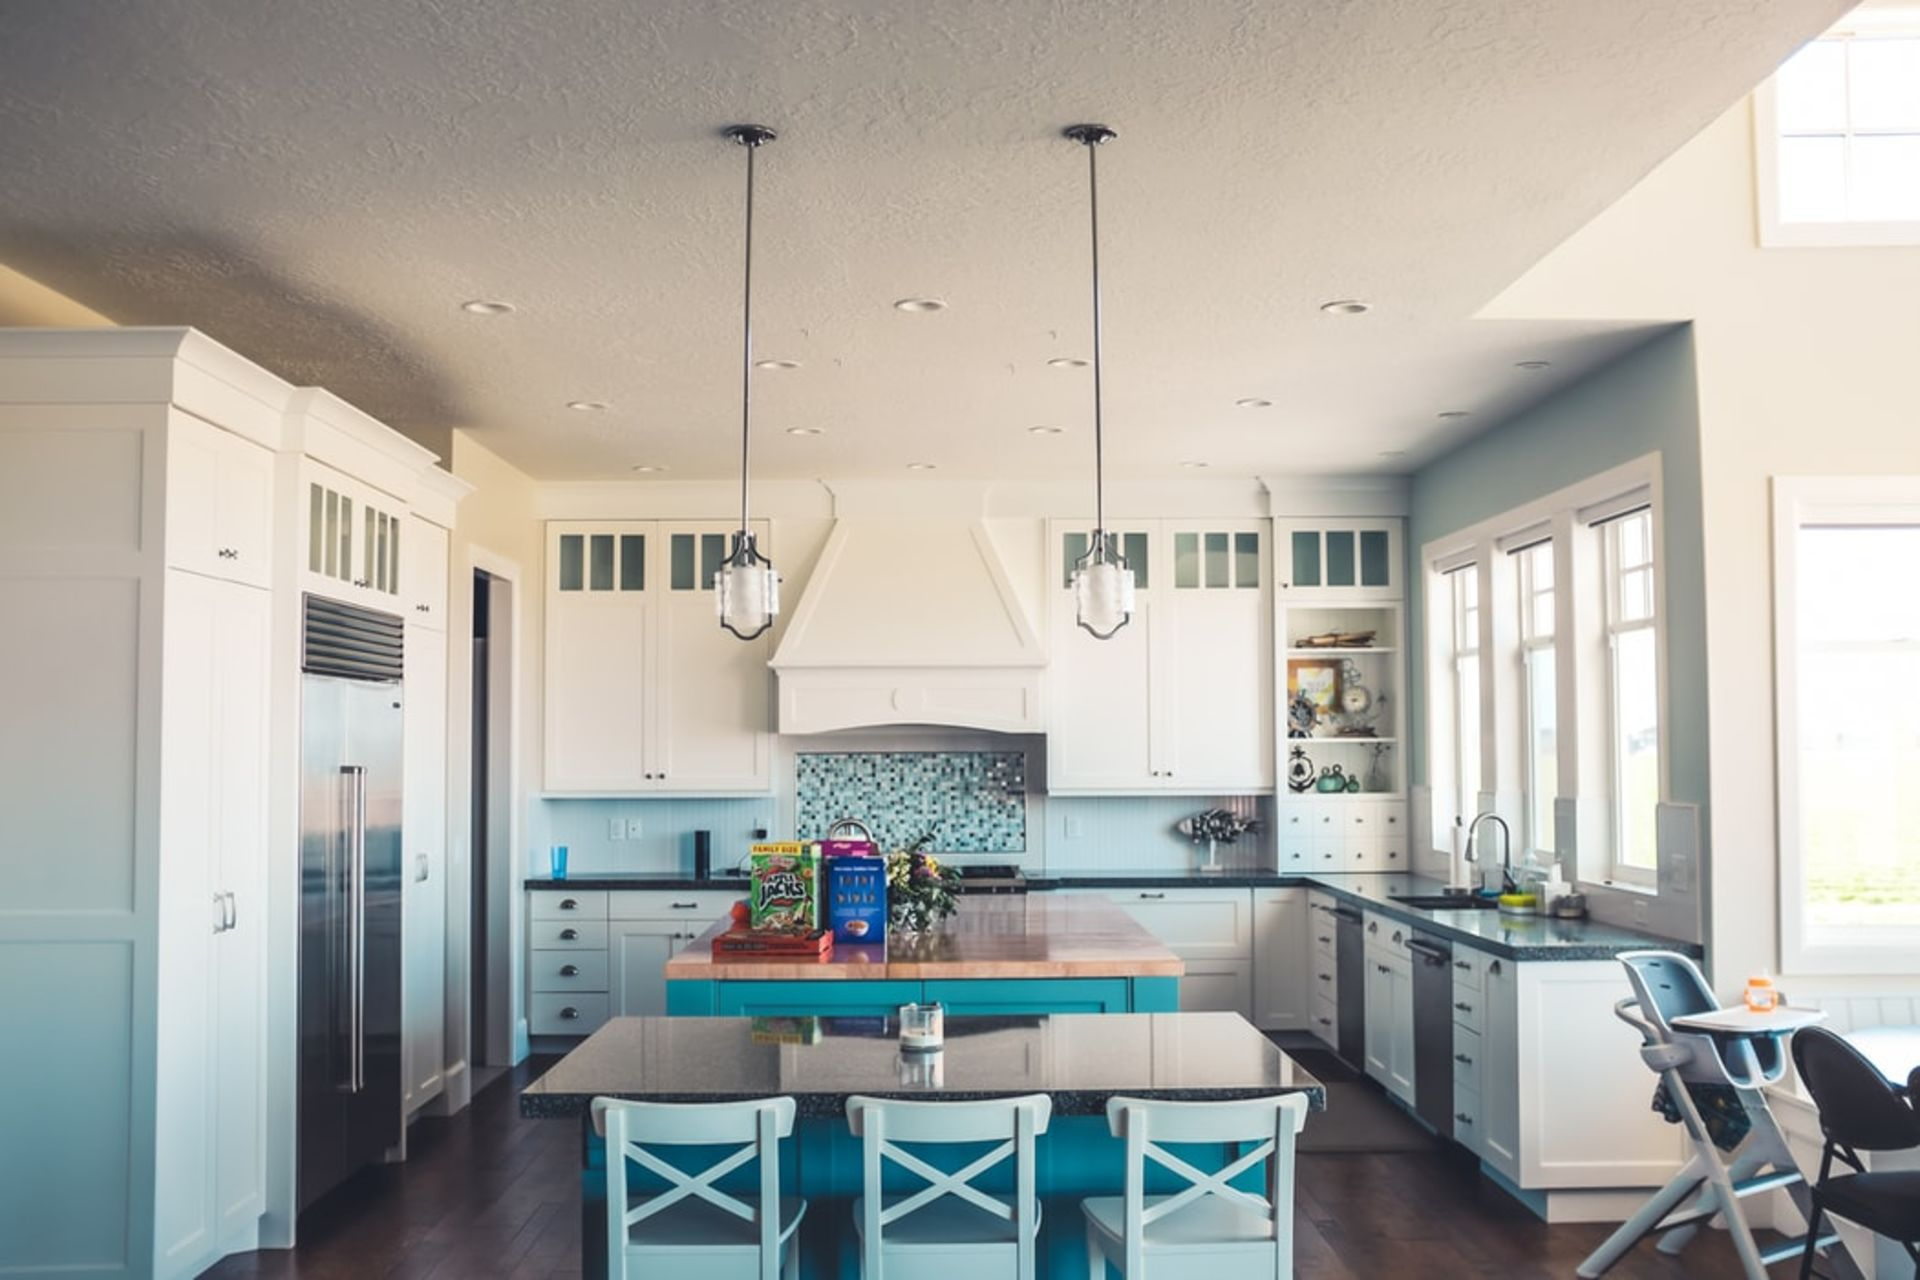 Staging Like a Sage: Interior Design Tips to Sell Your Home